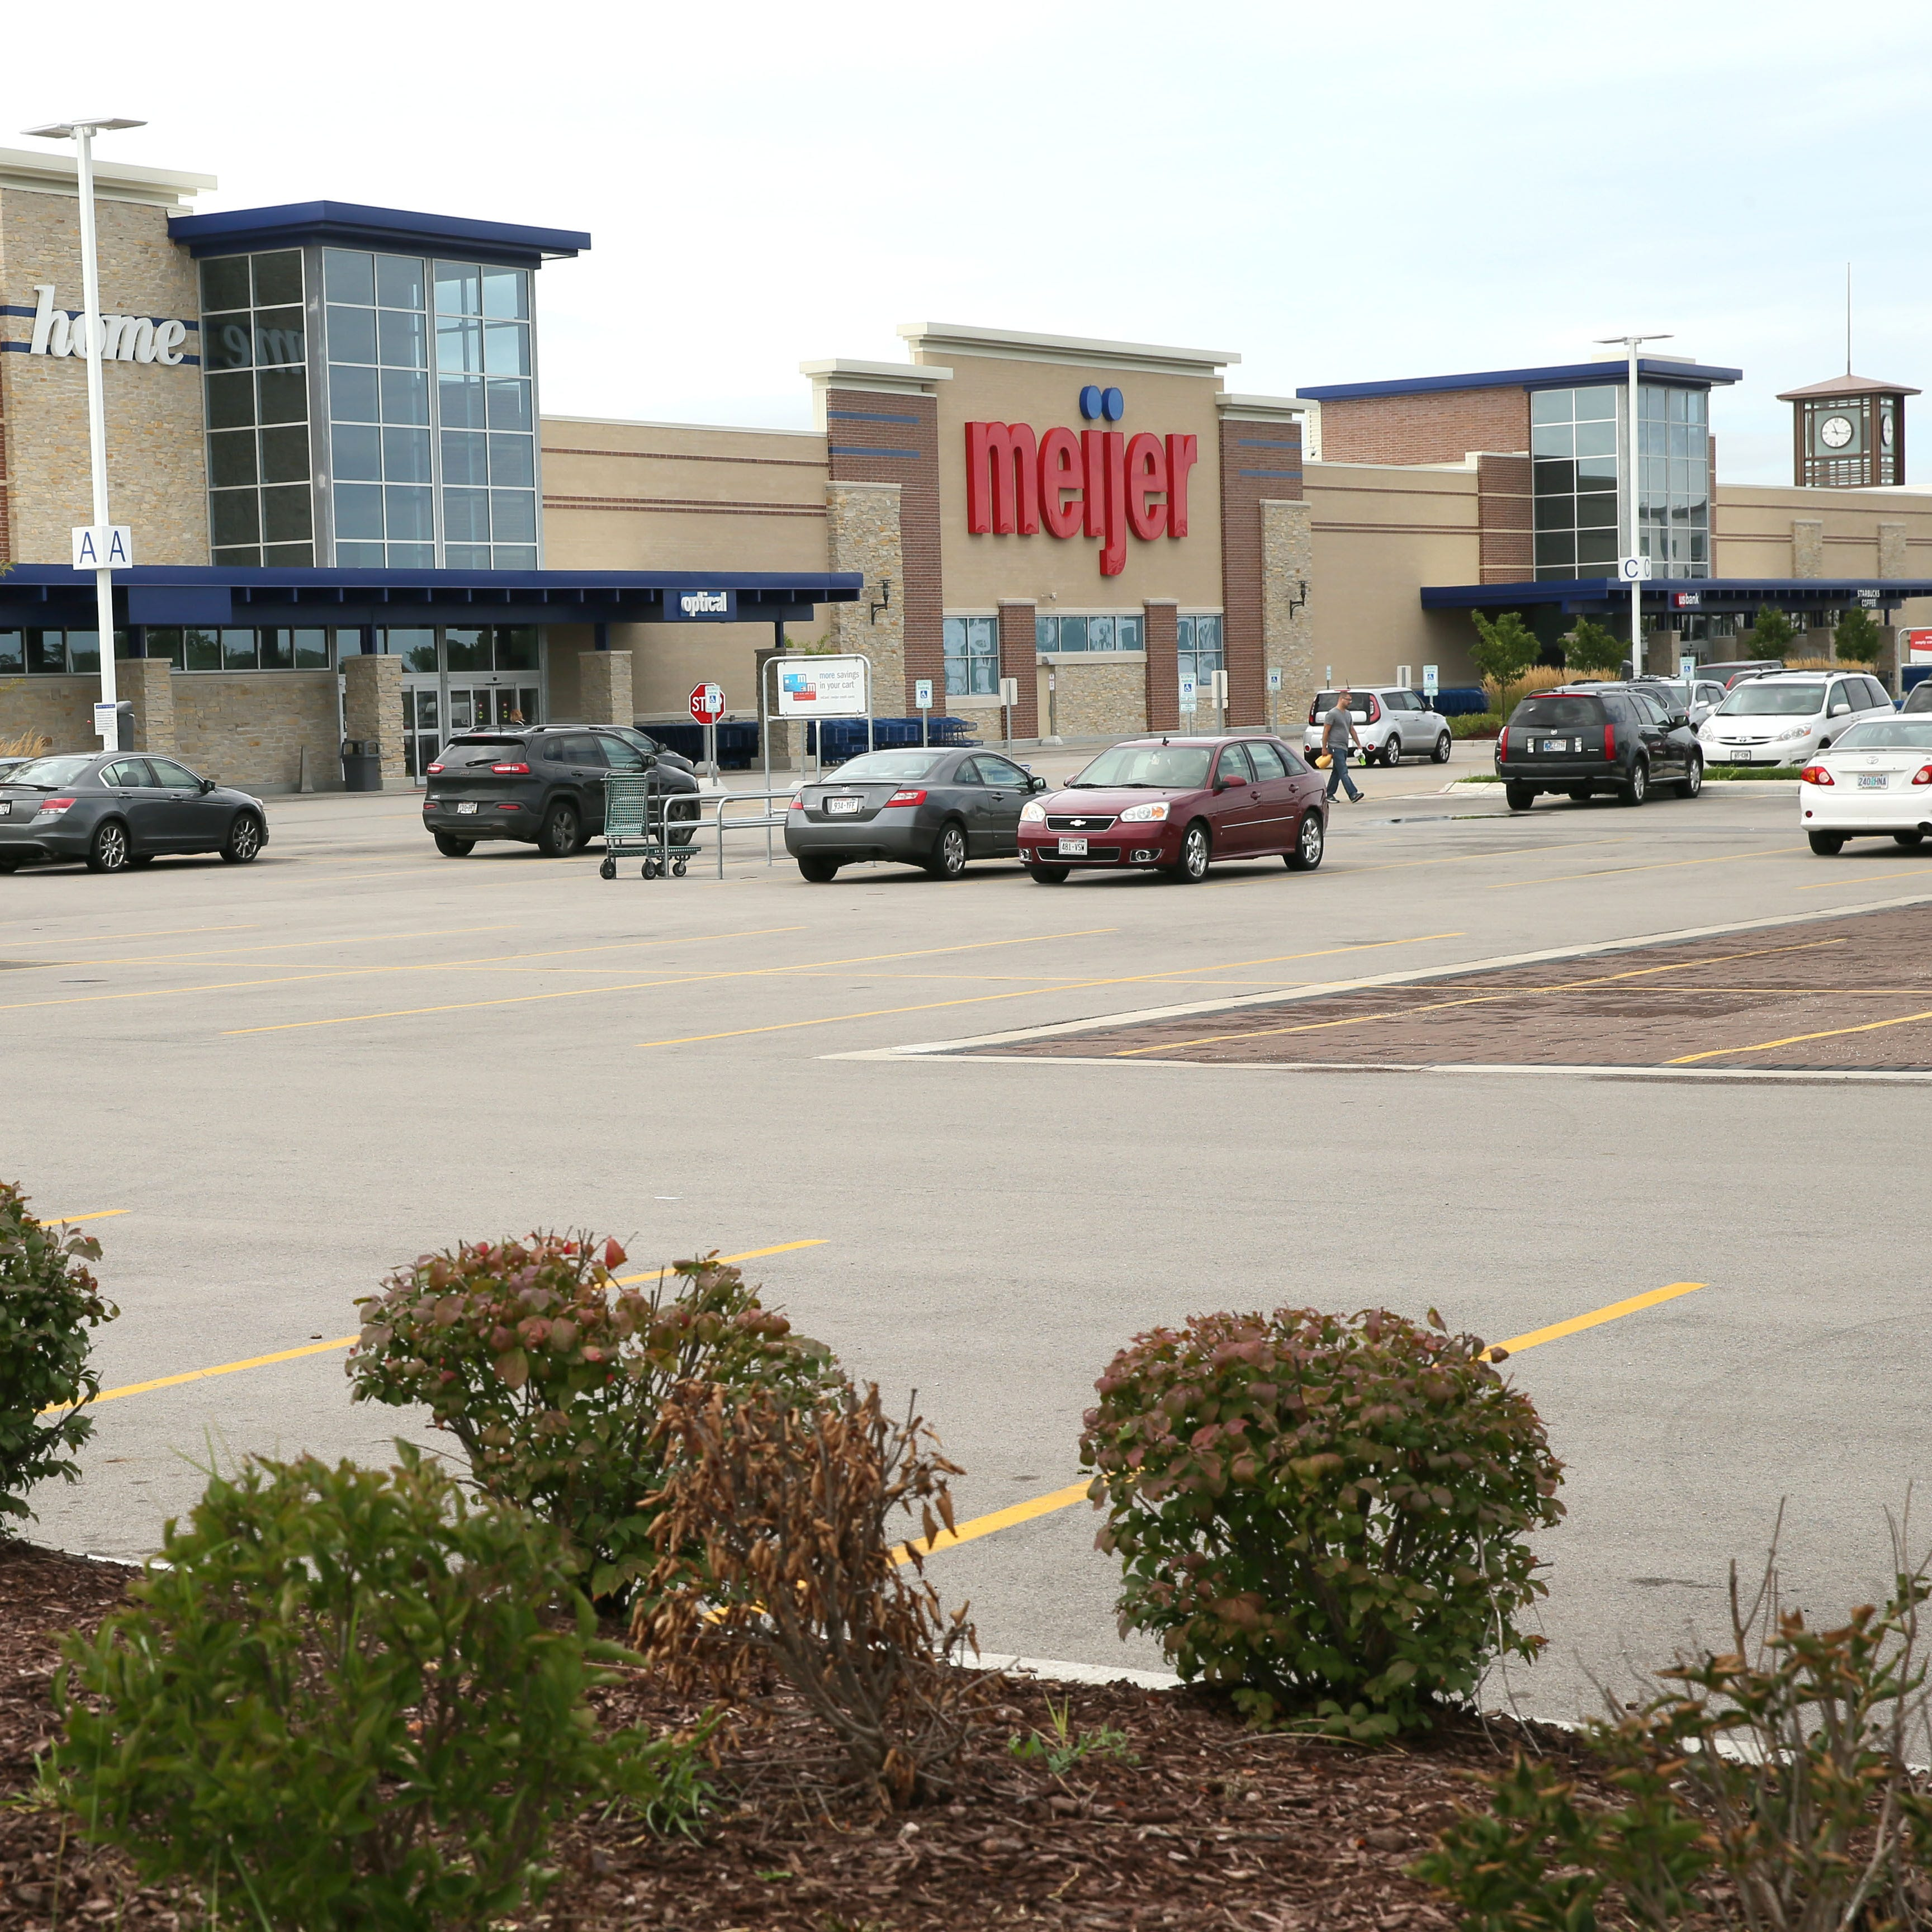 An Oak Creek Meijer cashier stole nearly $8,000 through coupons, police say